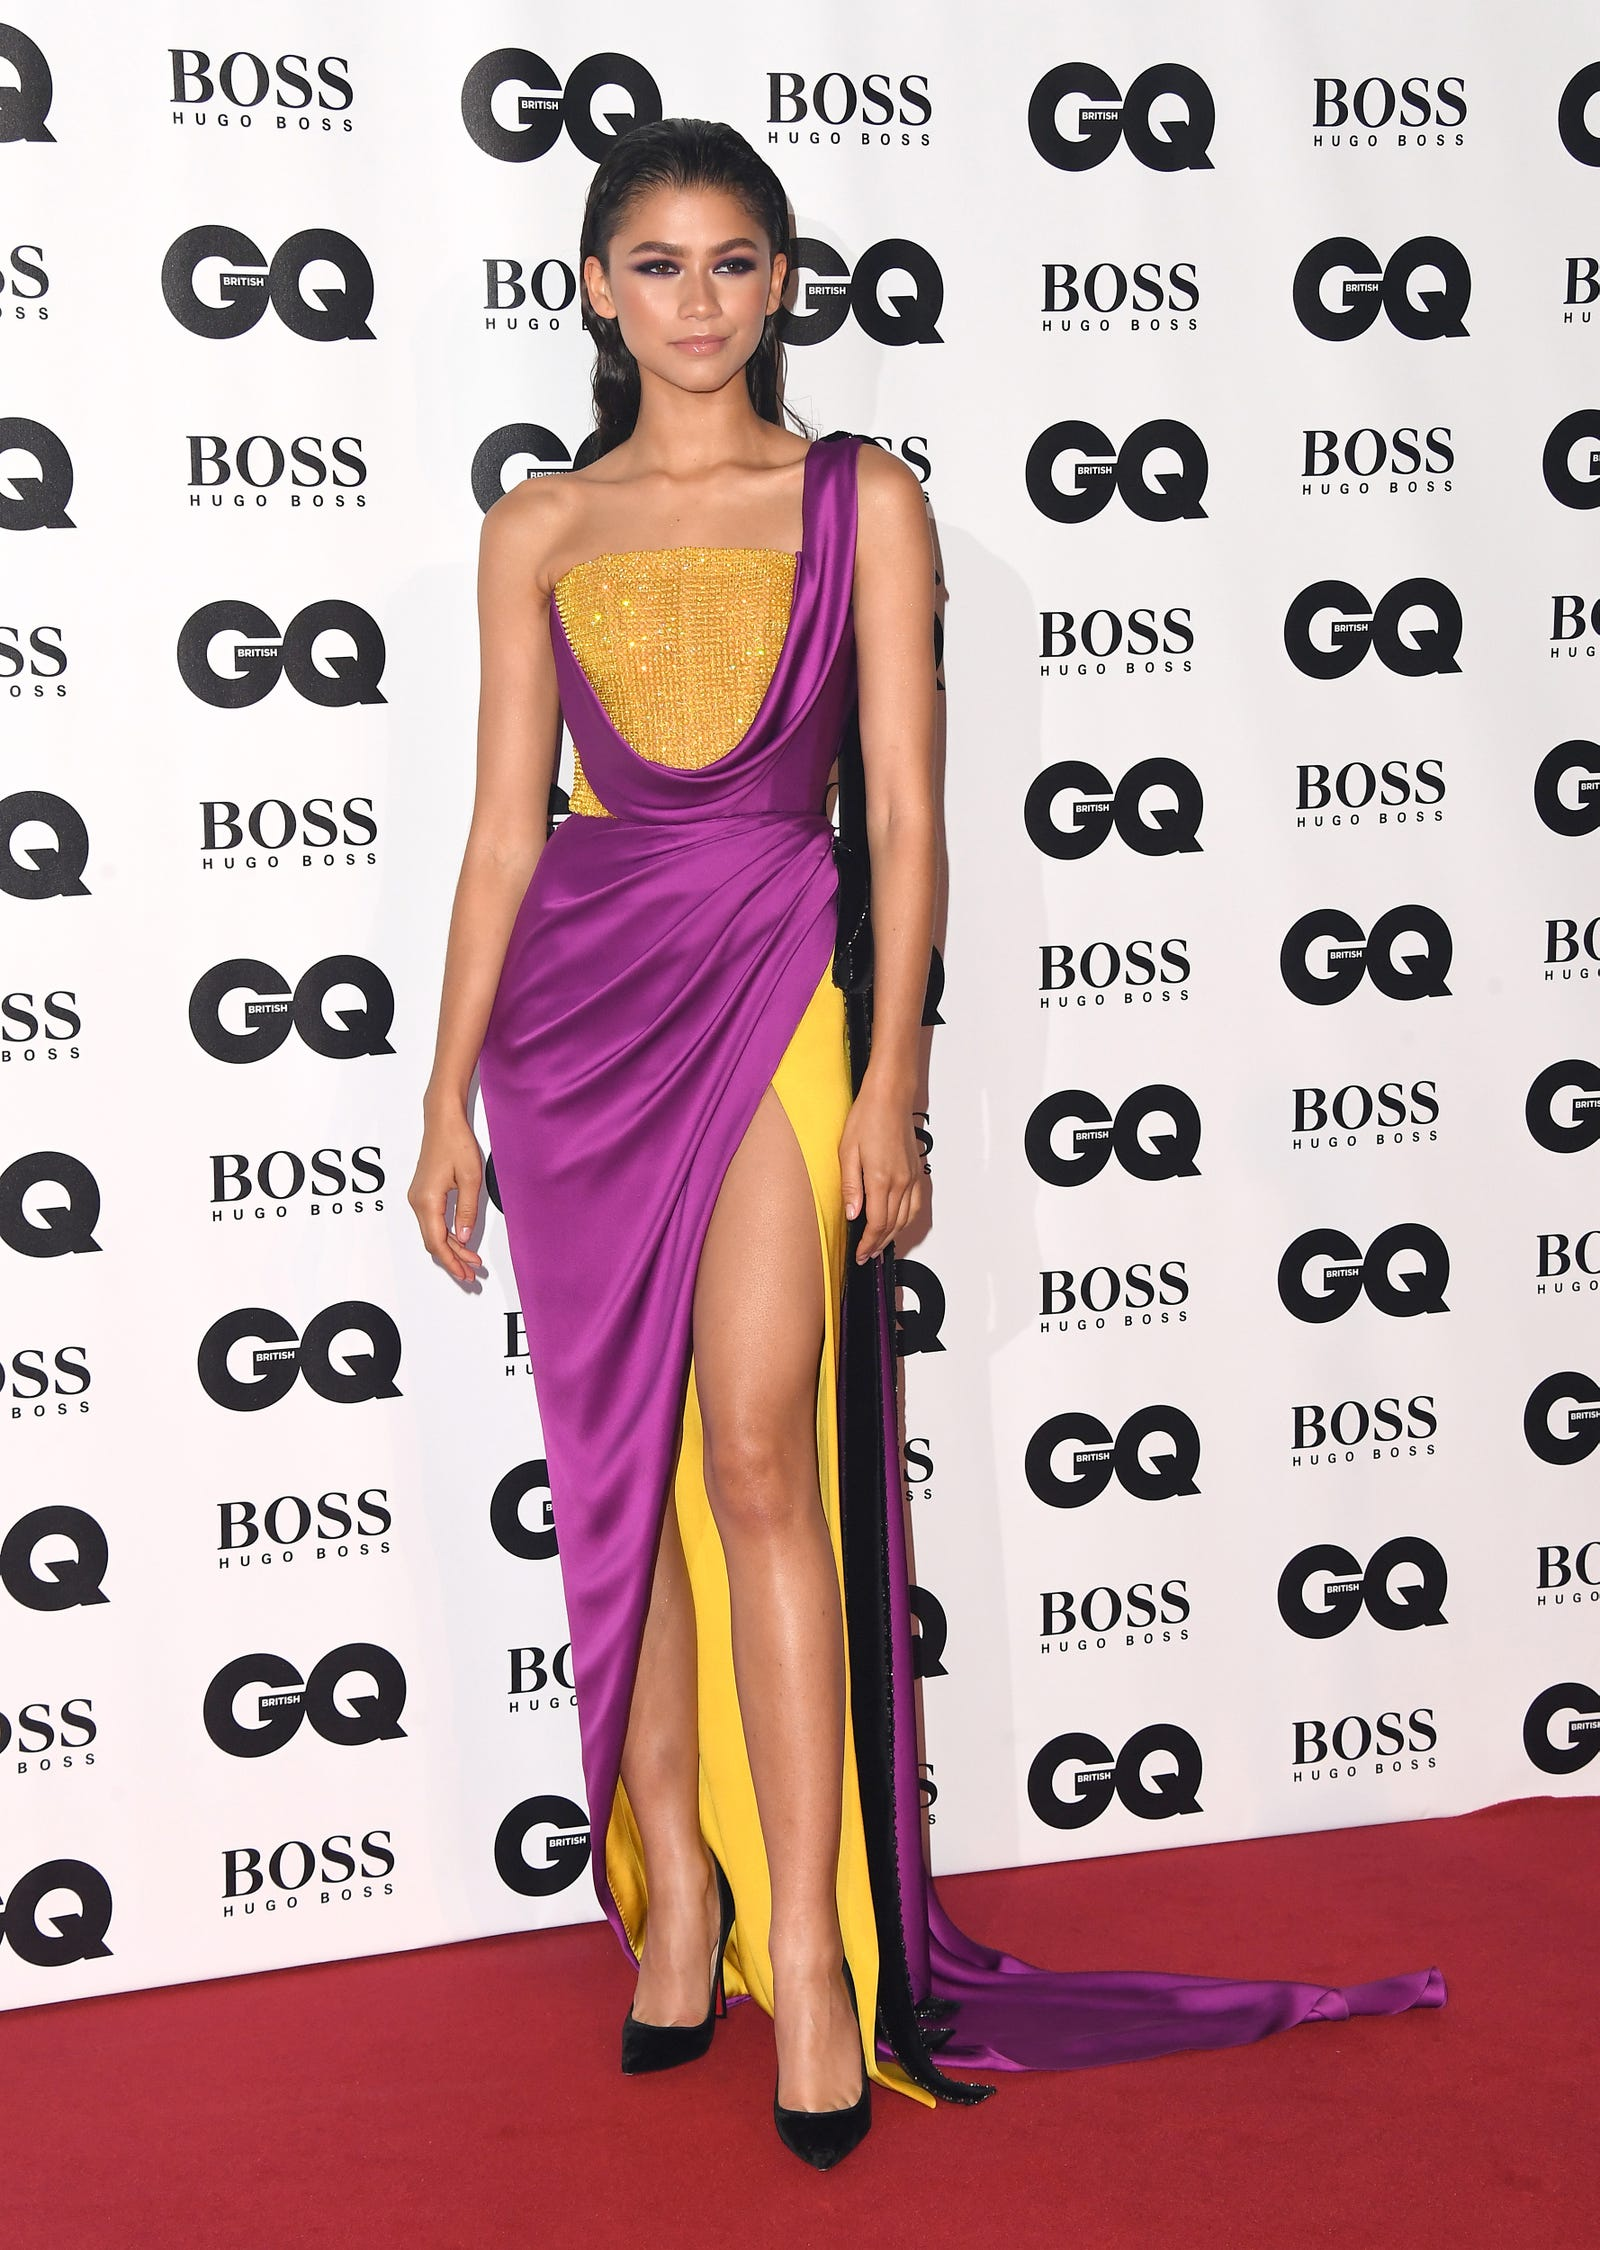 Zendaya attends the GQ Men of the Year awards on September 5, 2018 in London, England.